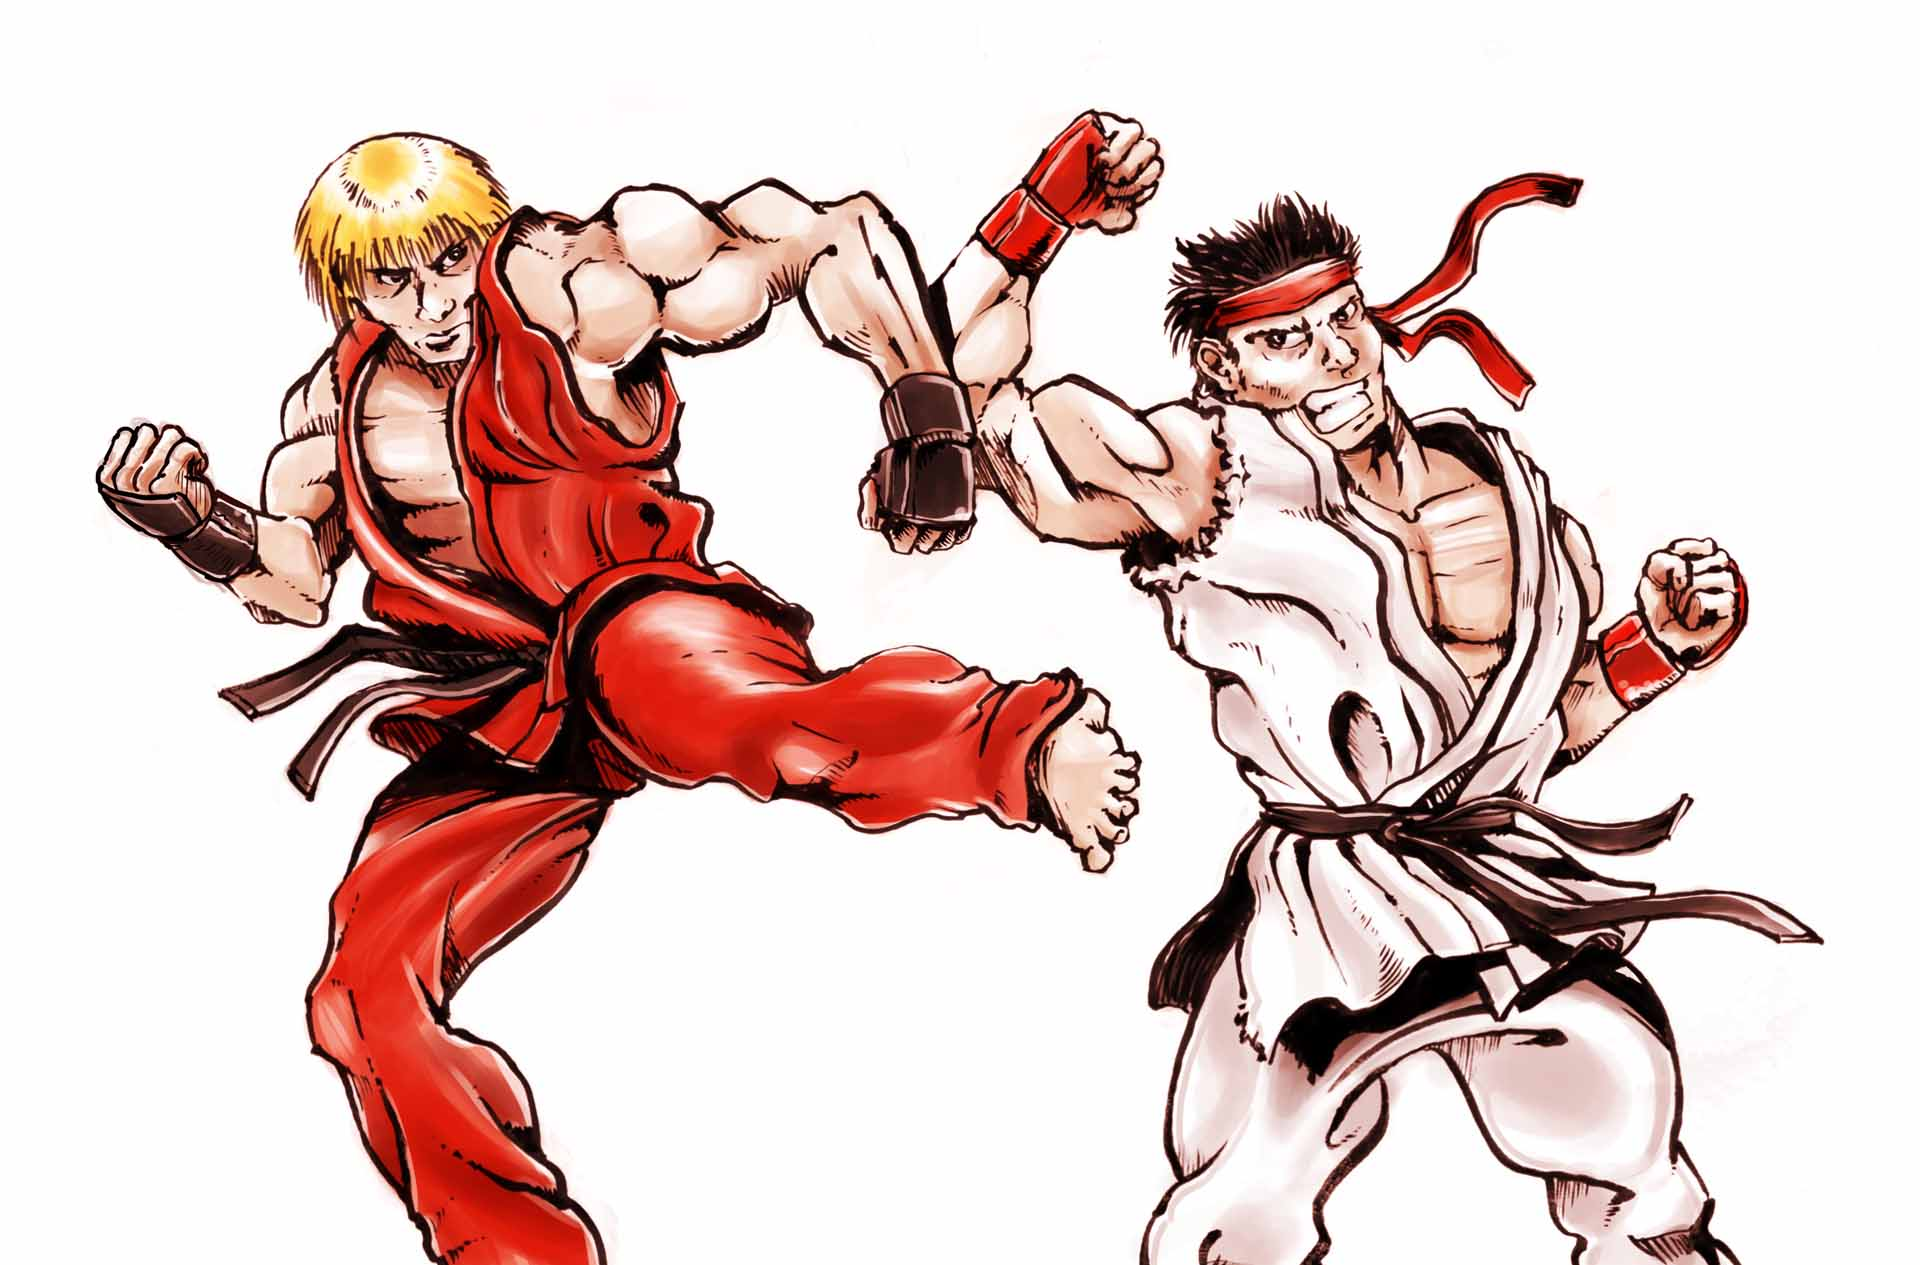 Final Ken Vs Ryu Street Fighter Illustration